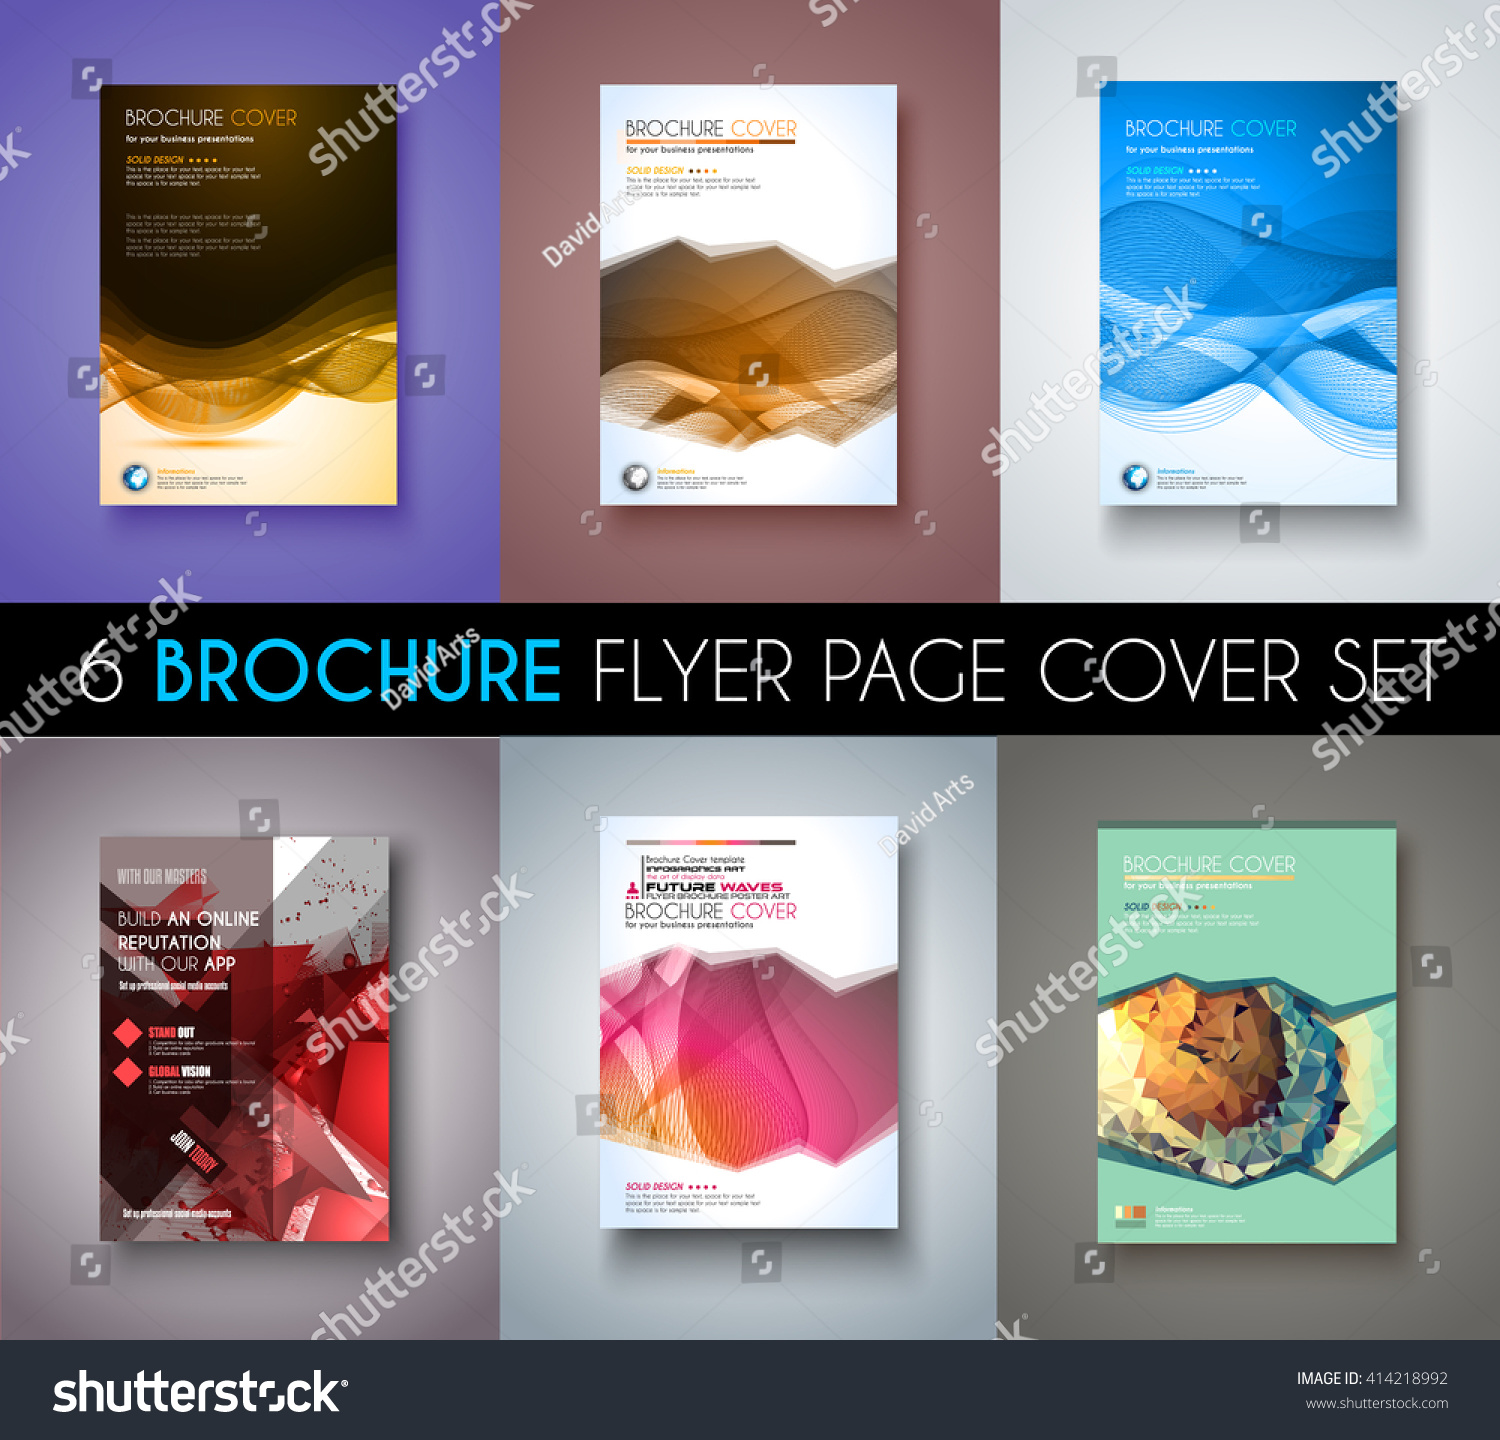 Brochure template flyer design depliant cover stock vector for Marketing brochure template